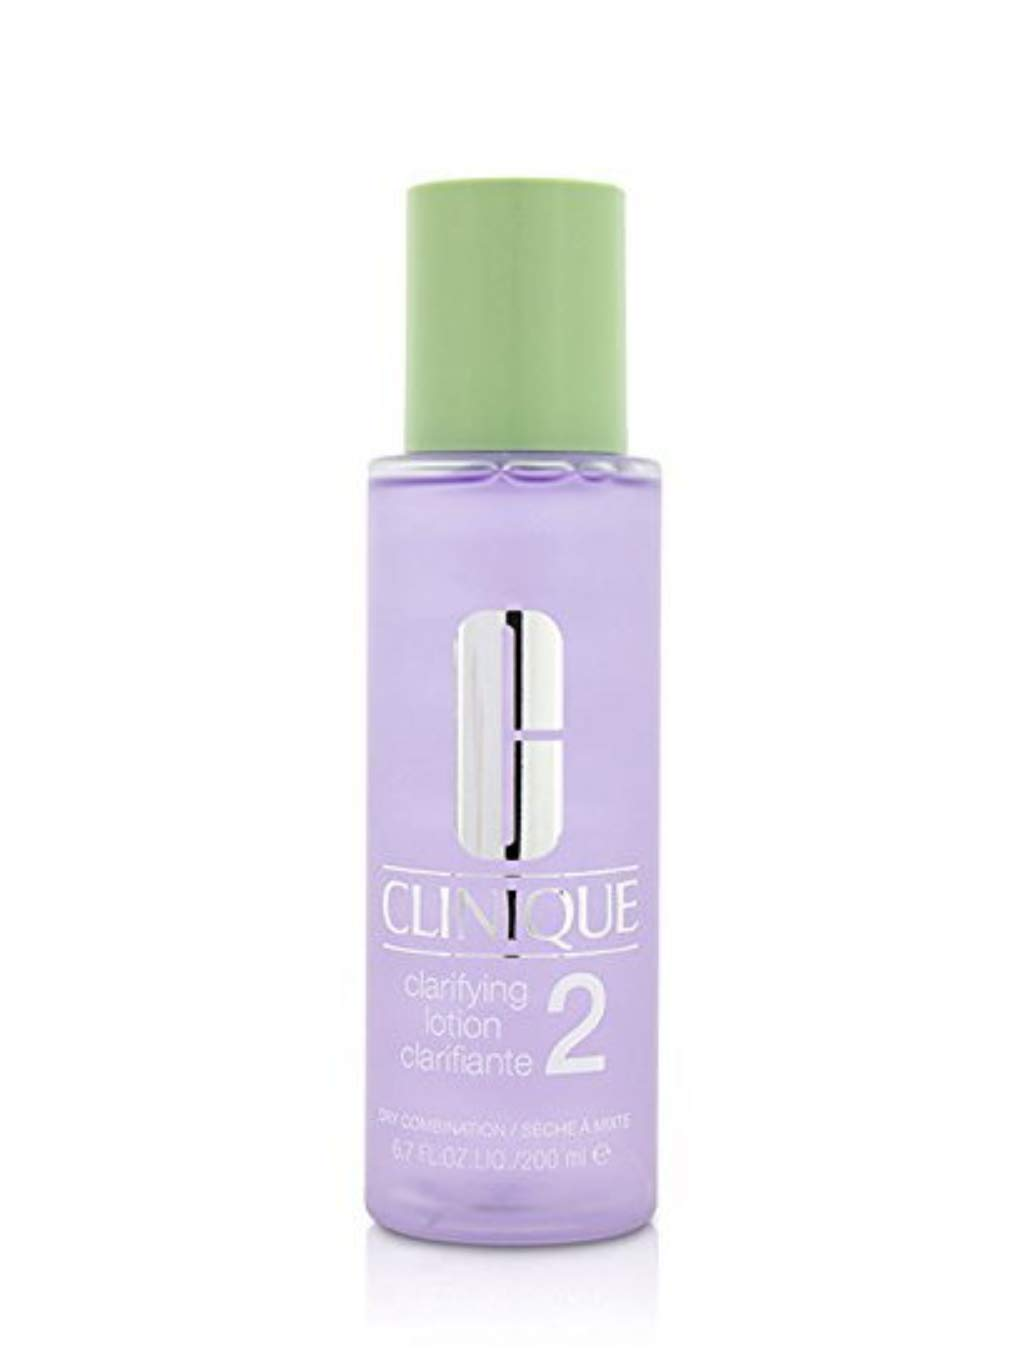 Clinique Clarifying Lotion #2, 200ml, 6.7oz